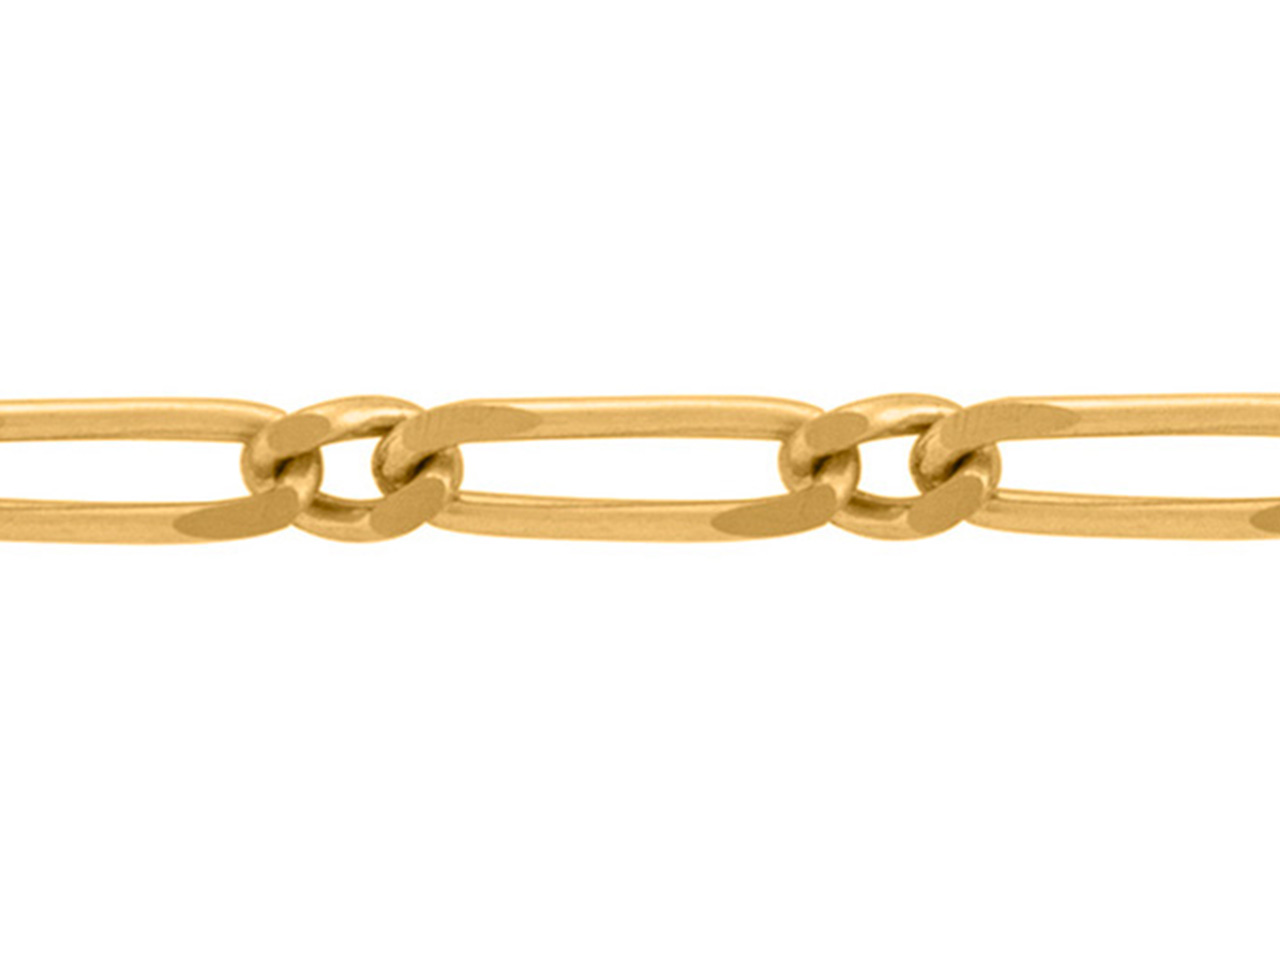 Chaine Figaro alternée 1/1, 3,5 mm, Or jaune 18k. Réf. 00090